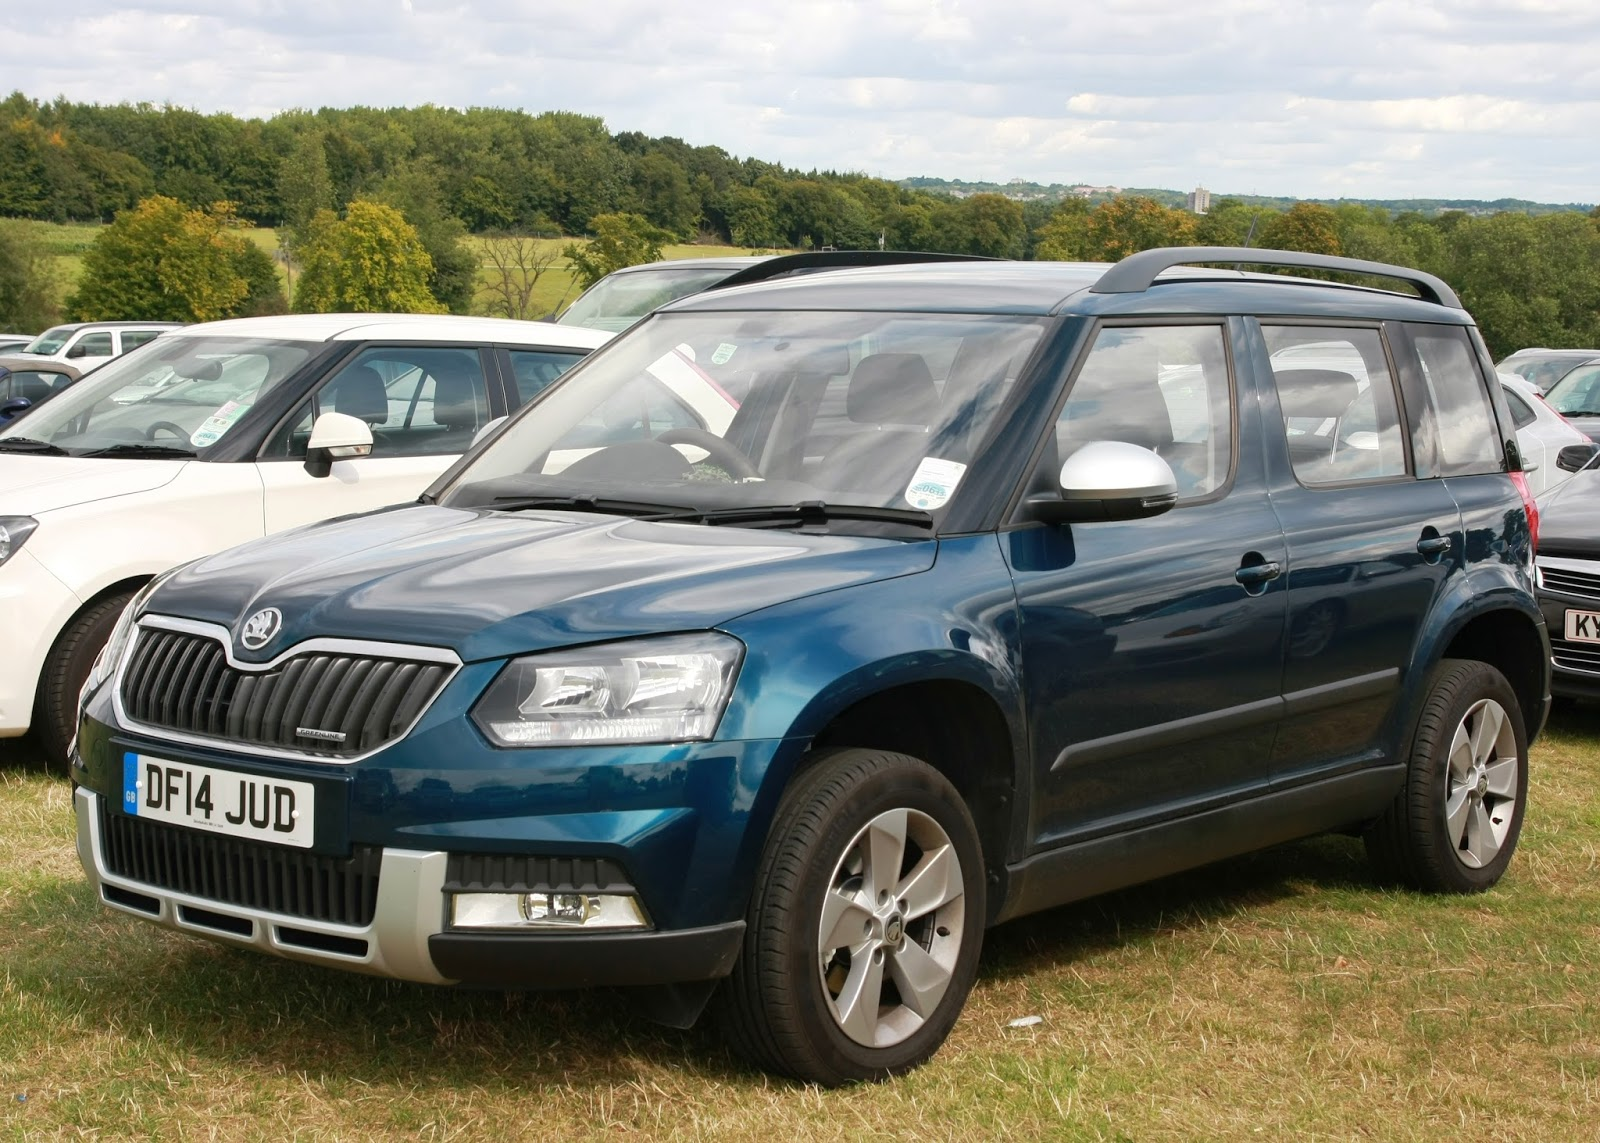 skoda yeti monte carlo review electronic and mechanic. Black Bedroom Furniture Sets. Home Design Ideas